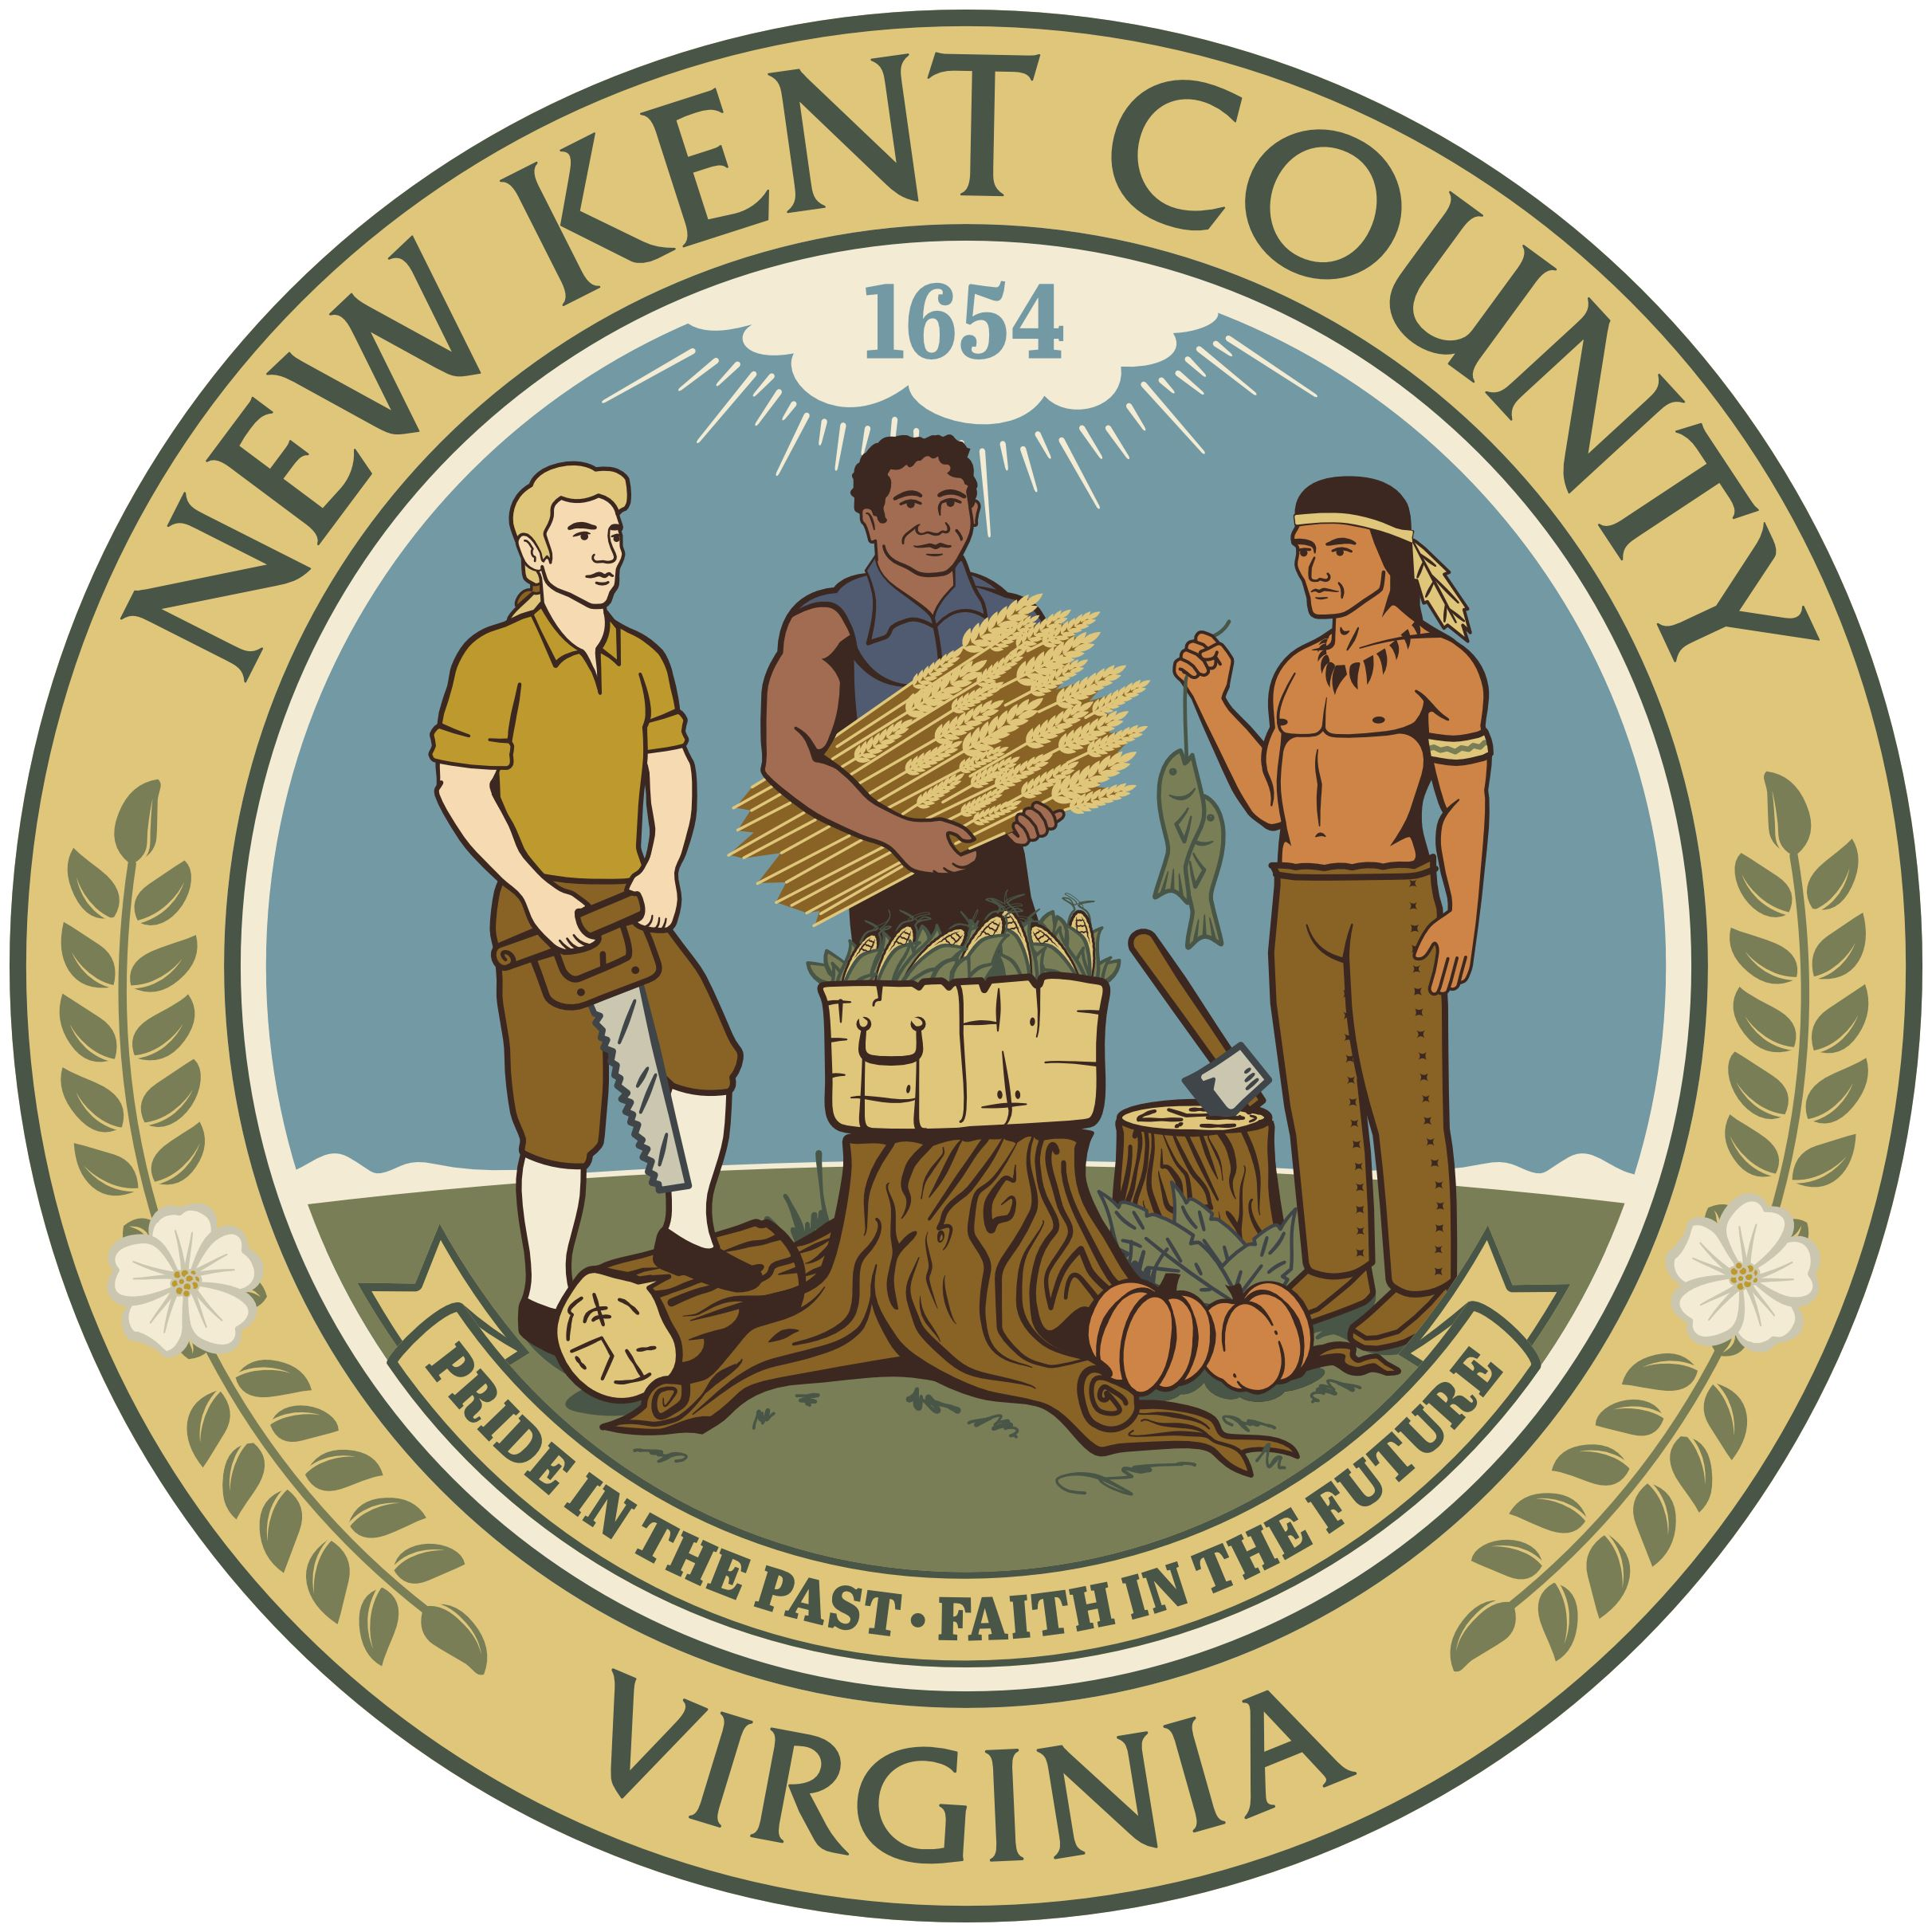 New Kent County Seal